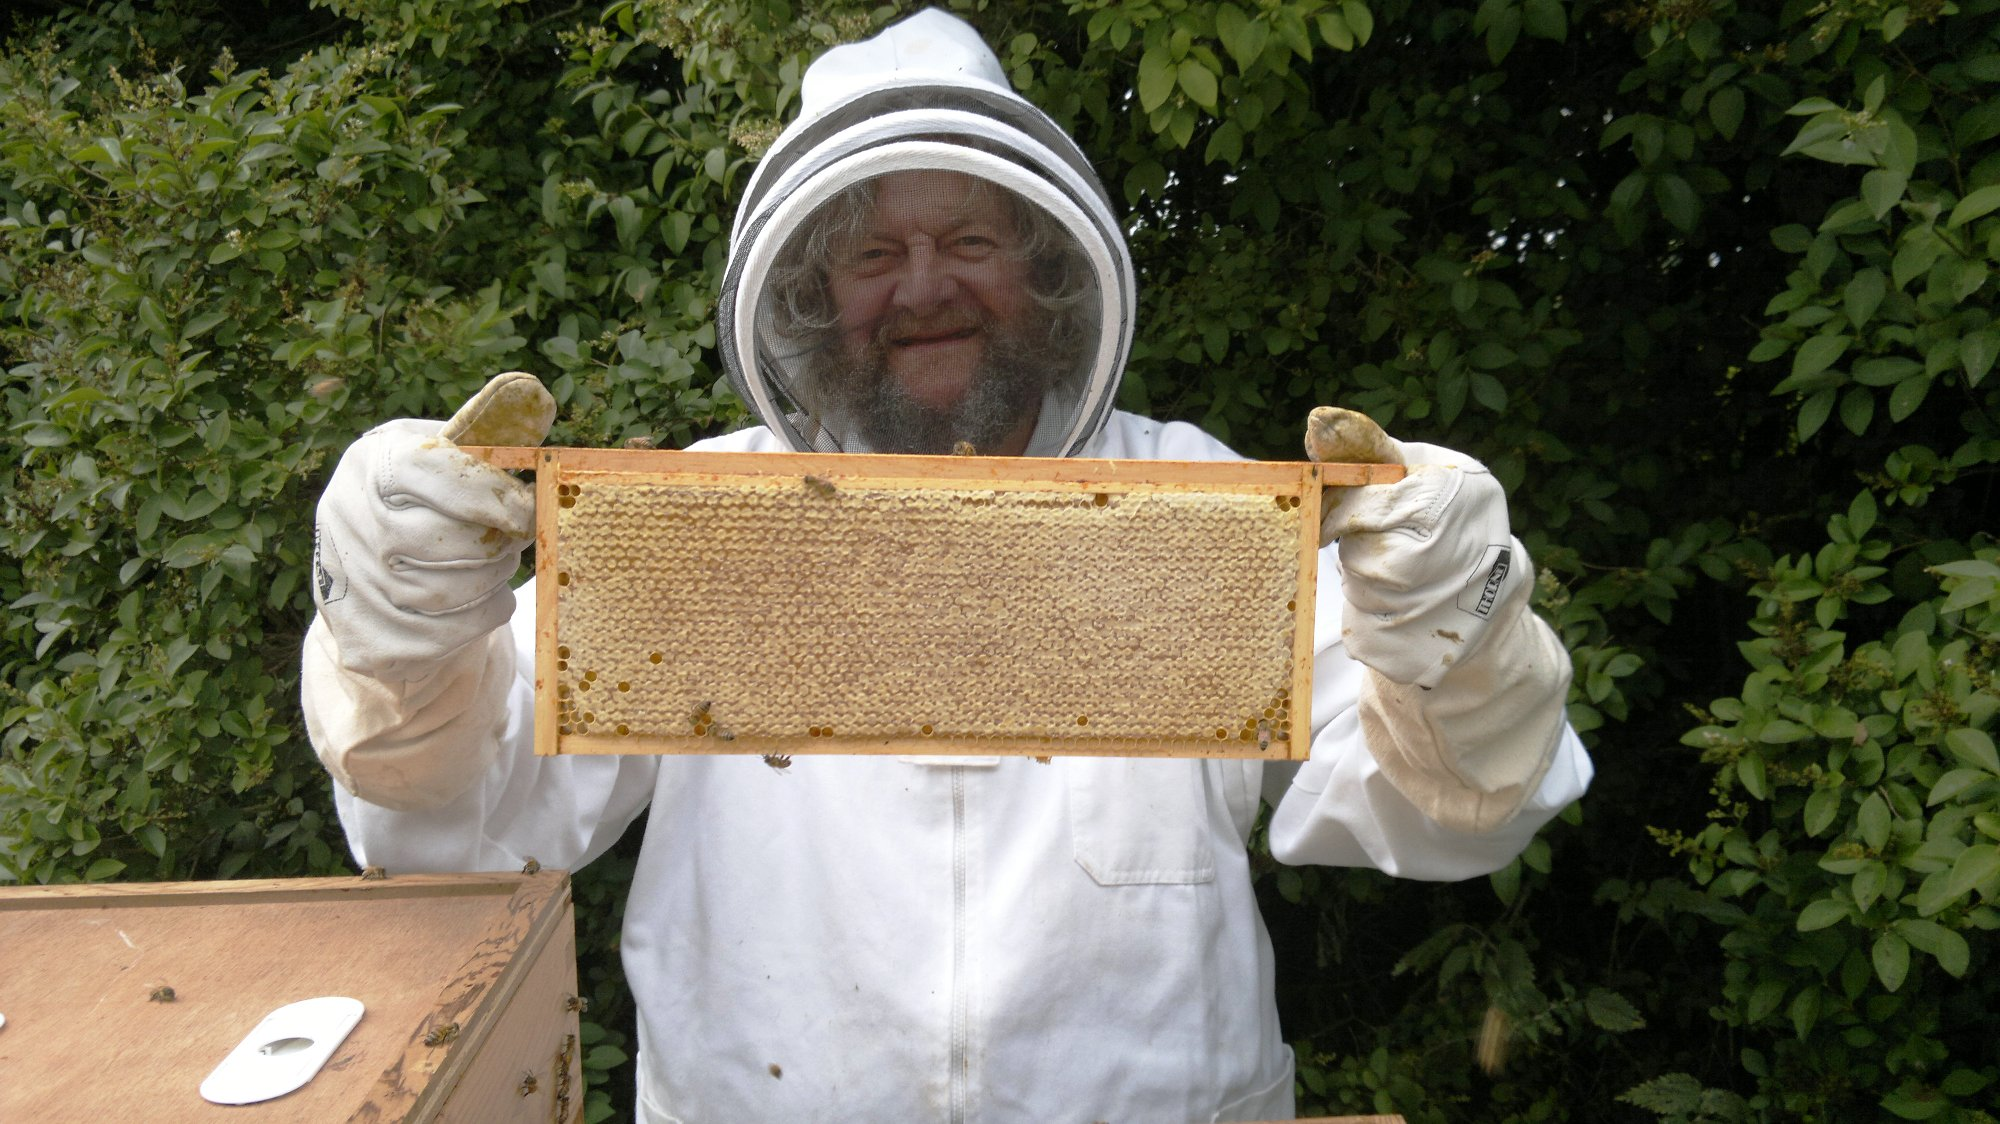 Dad looking very pleased with another full frame of honey